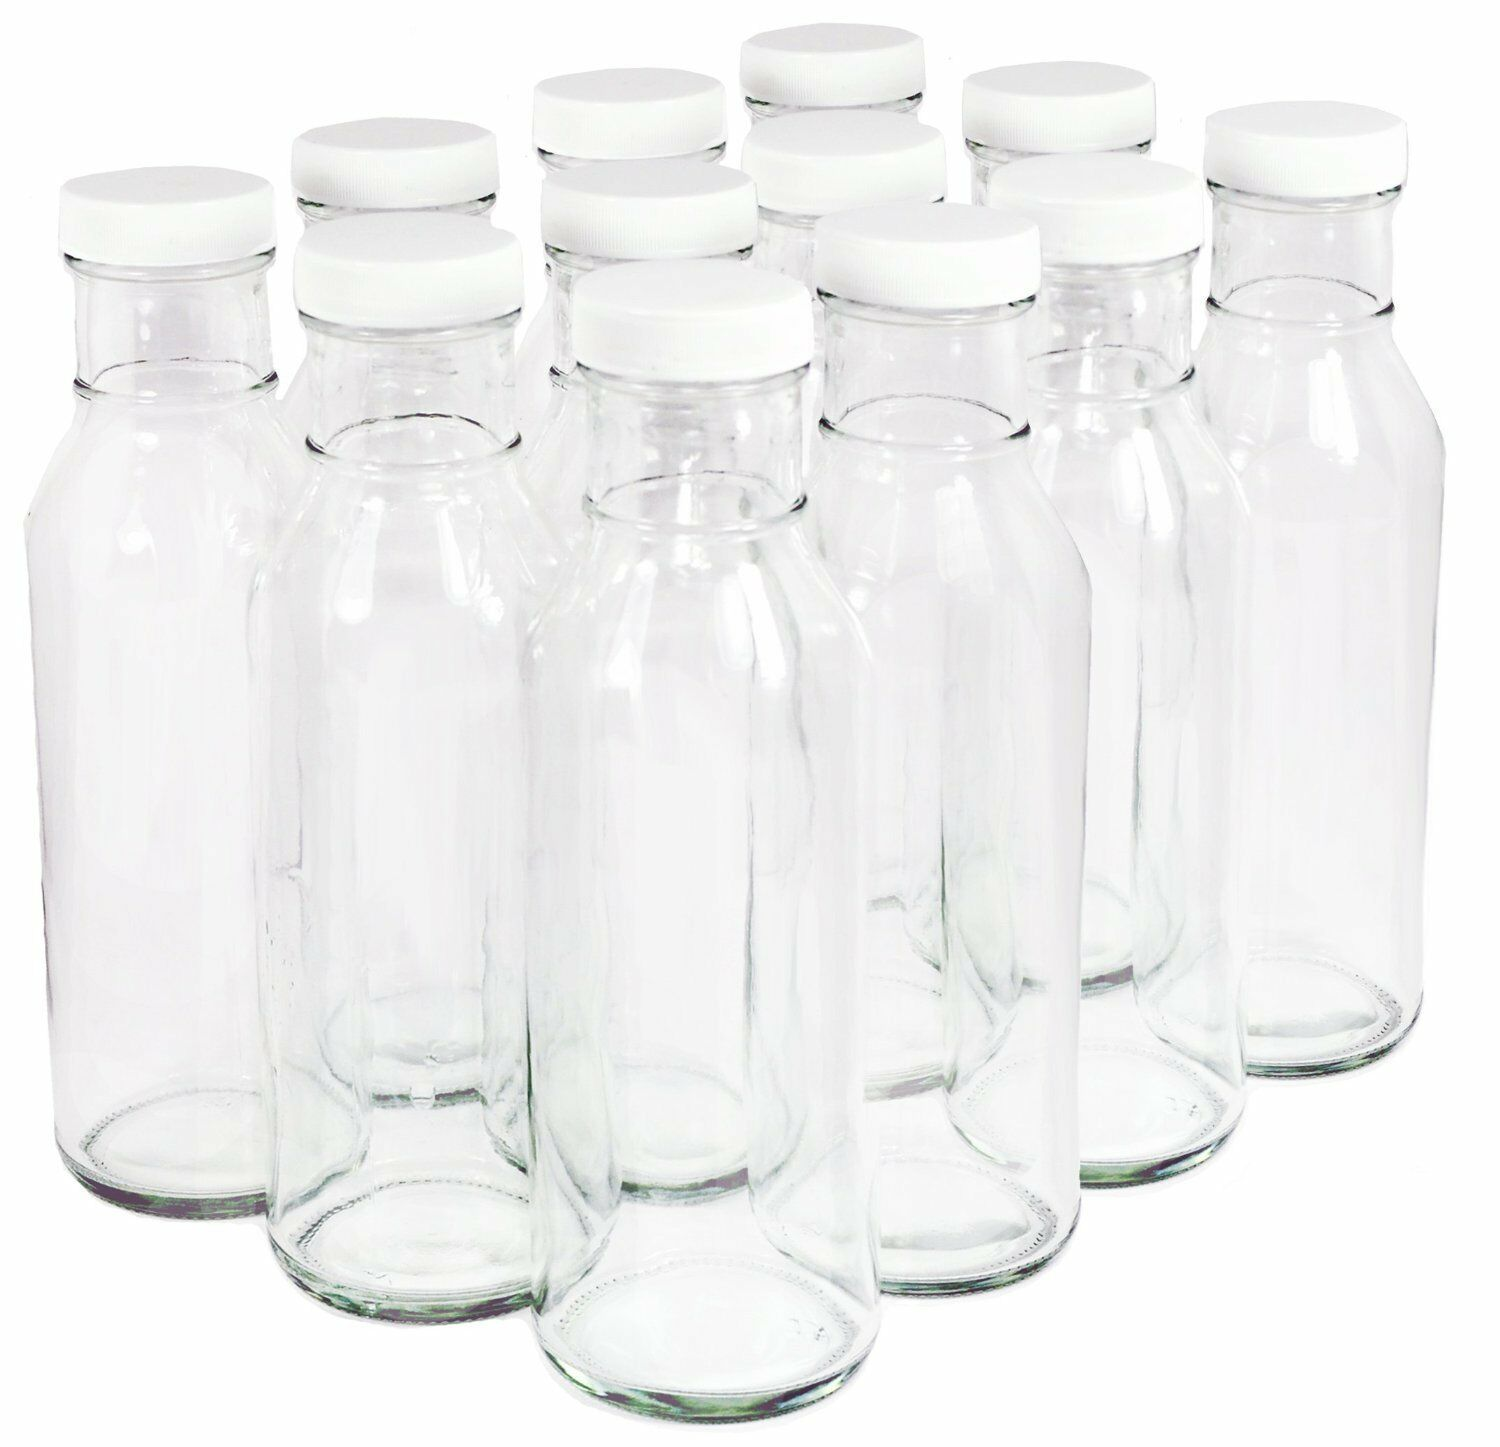 how to clean smelly bottles